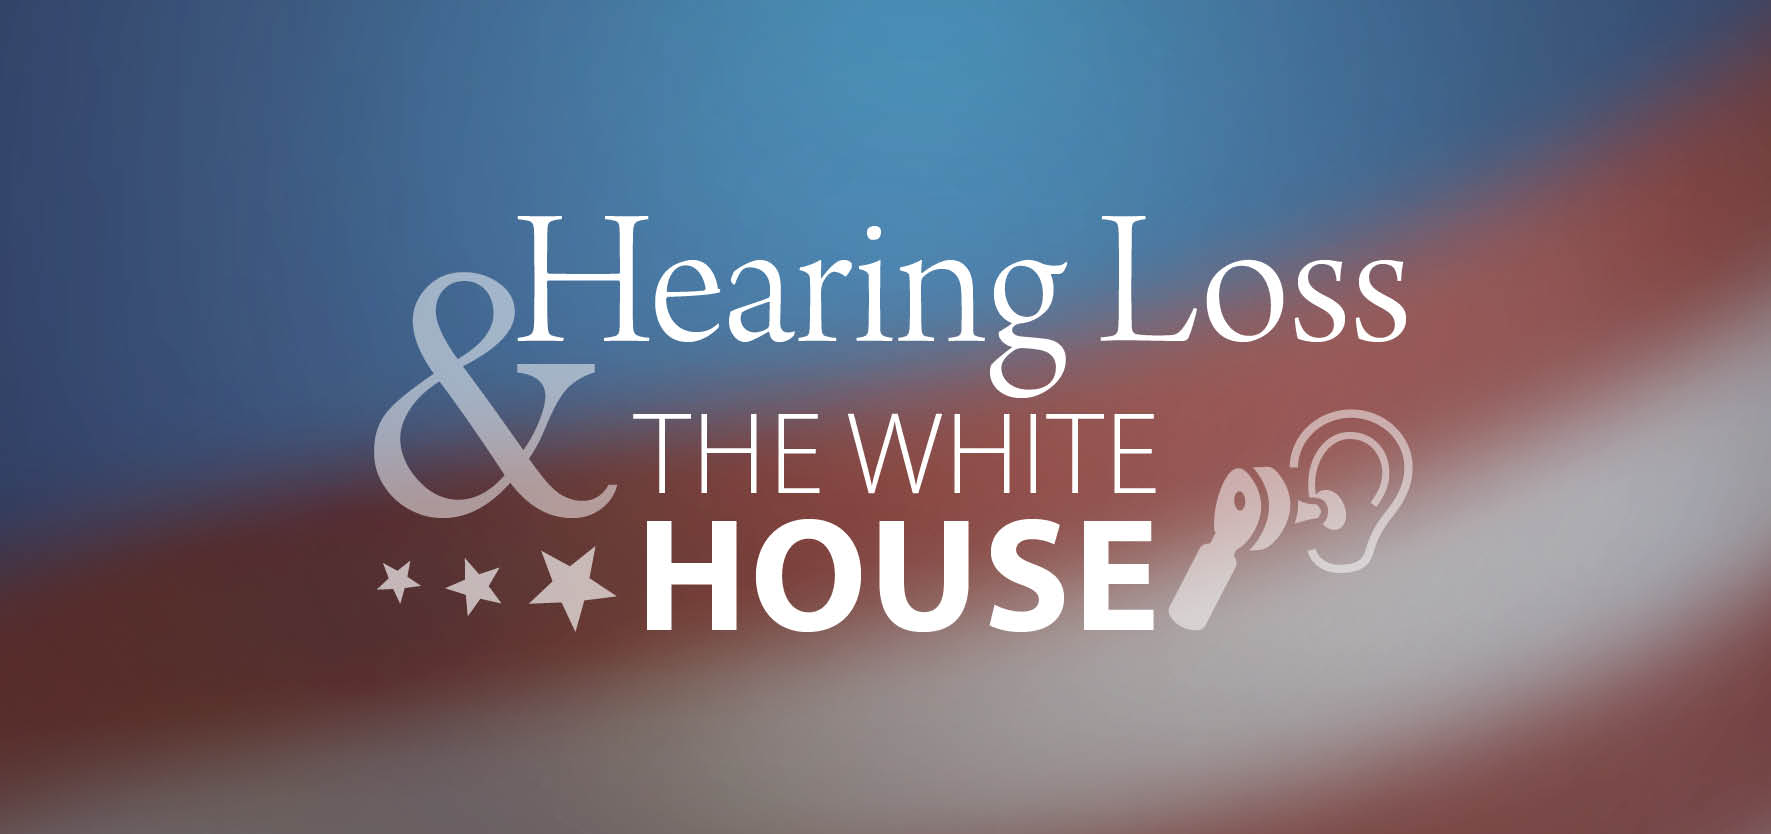 Hearing loss in the white house